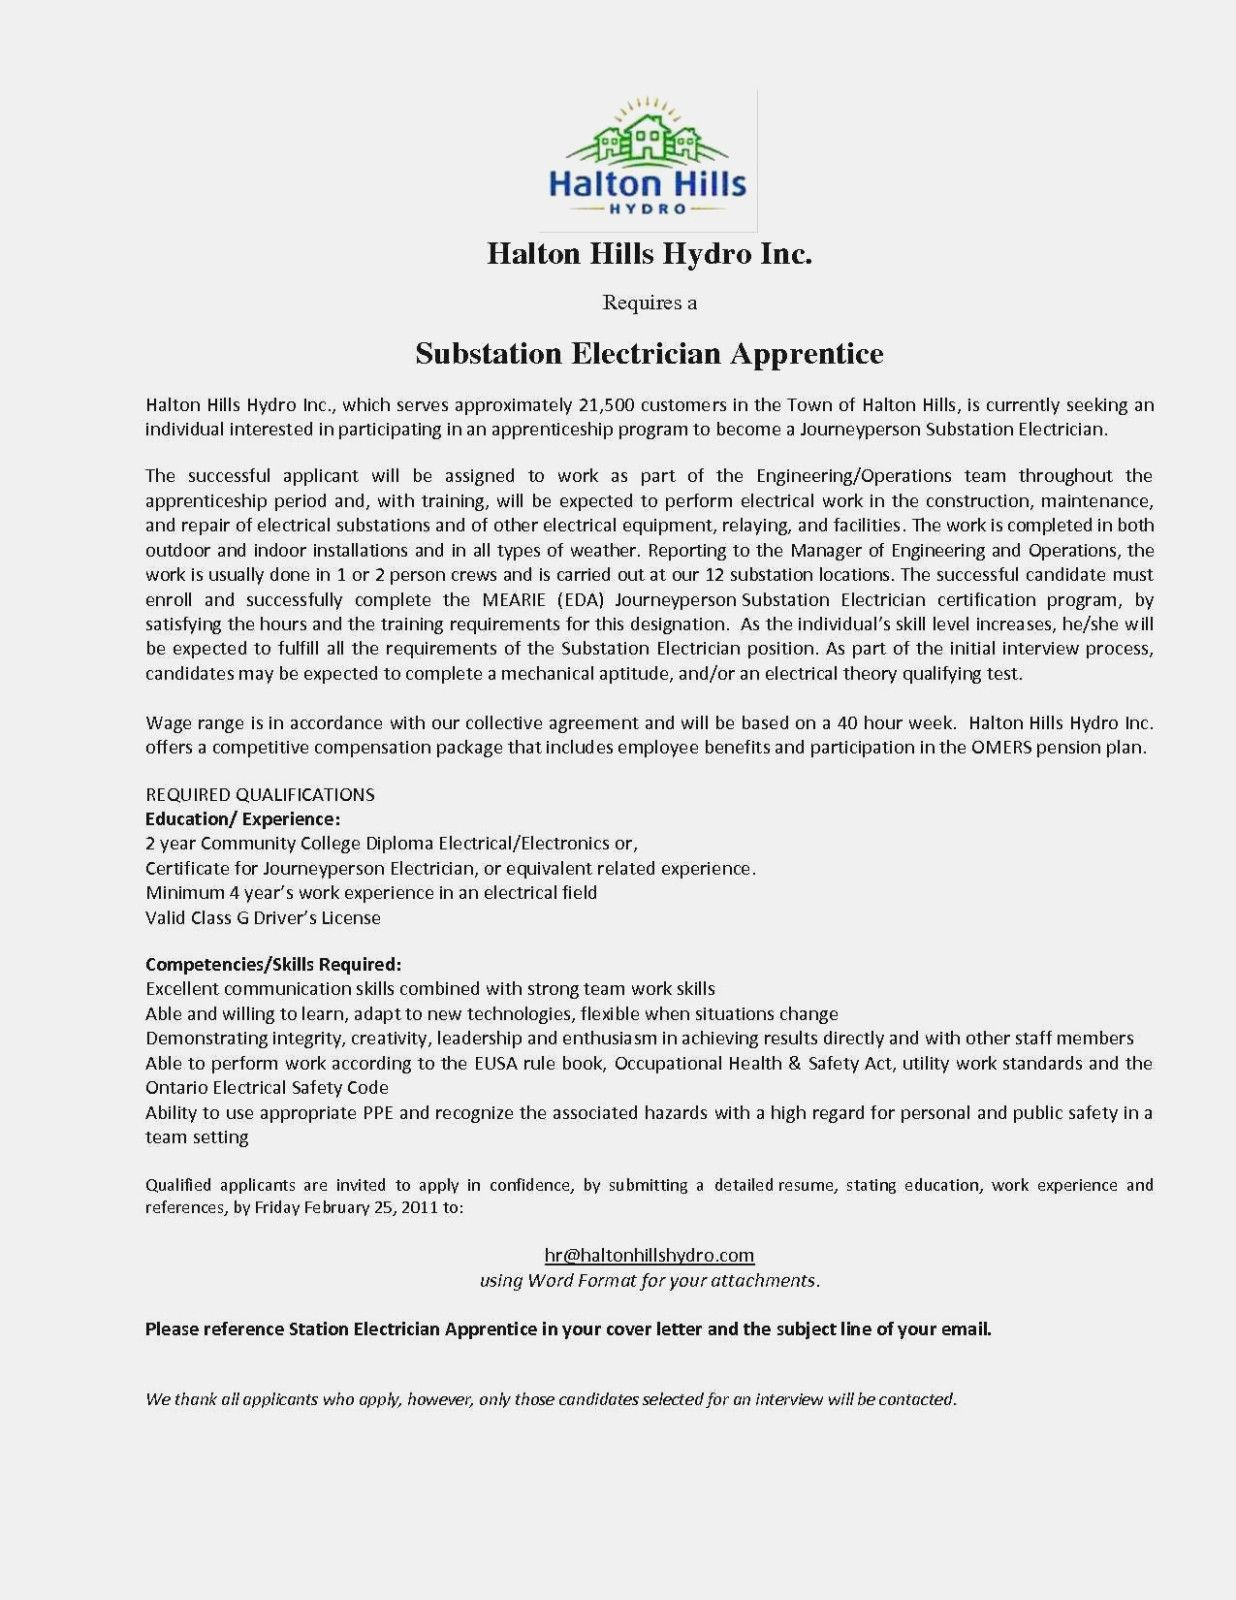 Apprentice electrician resume objective examples in 2021